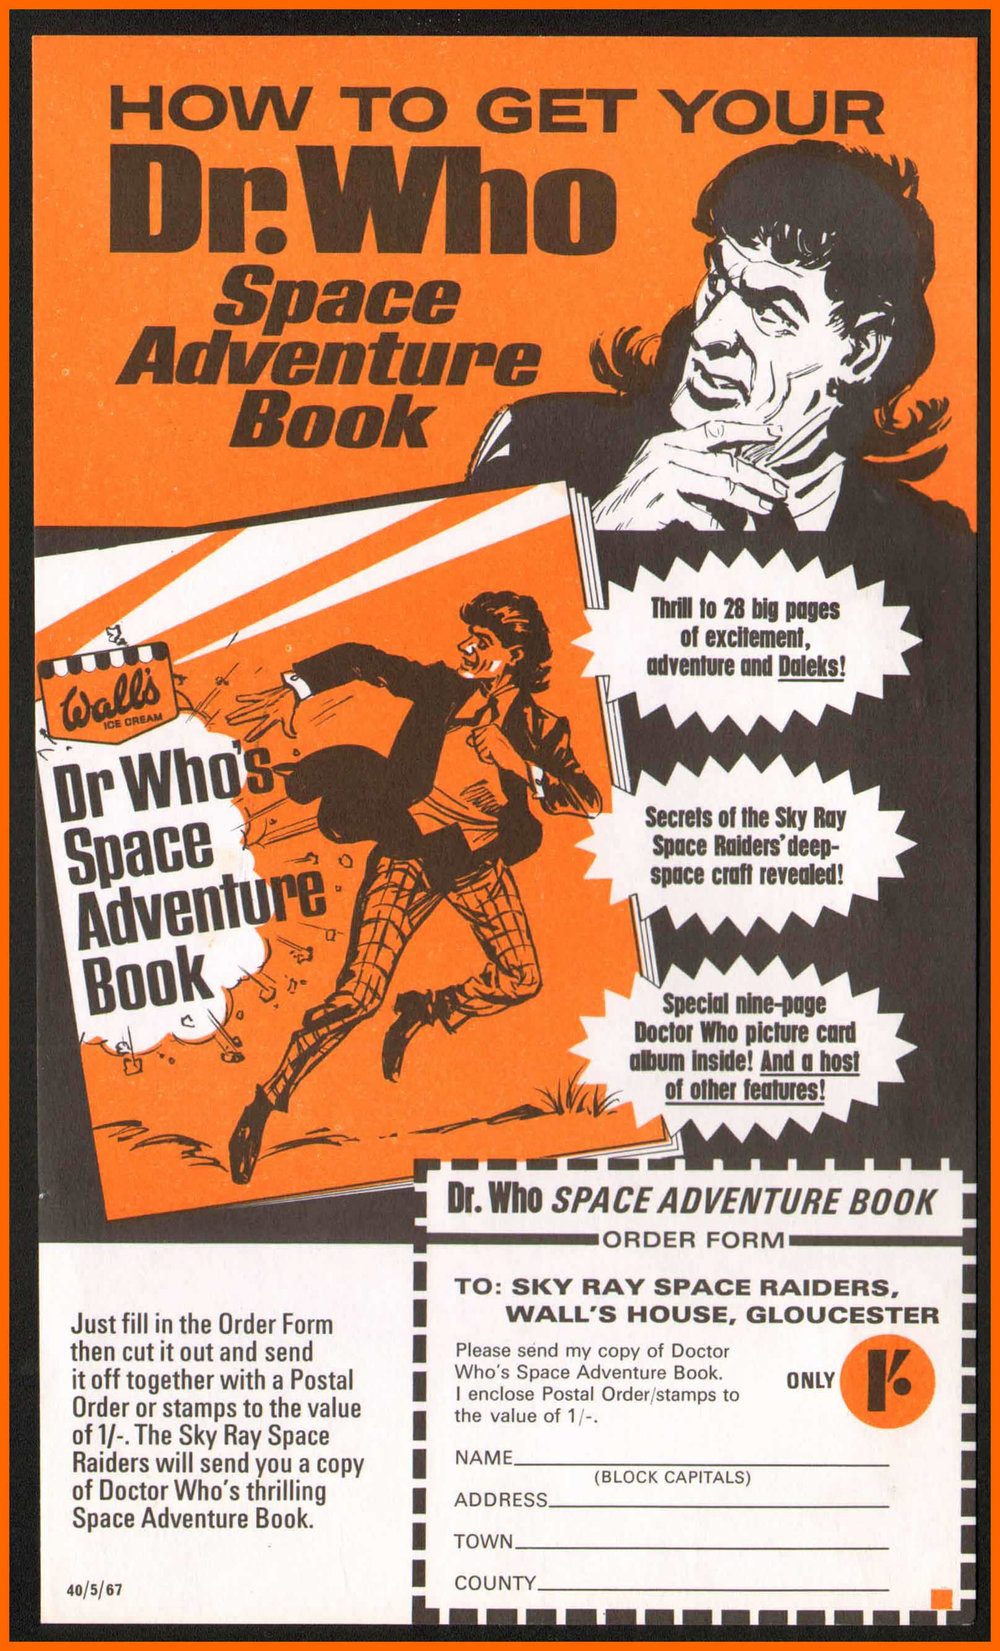 WANTED - Order form for Dr. Who's Space Adventure Book, which held the cards from the Wall's Sky Ray promotion (Image courtesy of Richard Bignell)